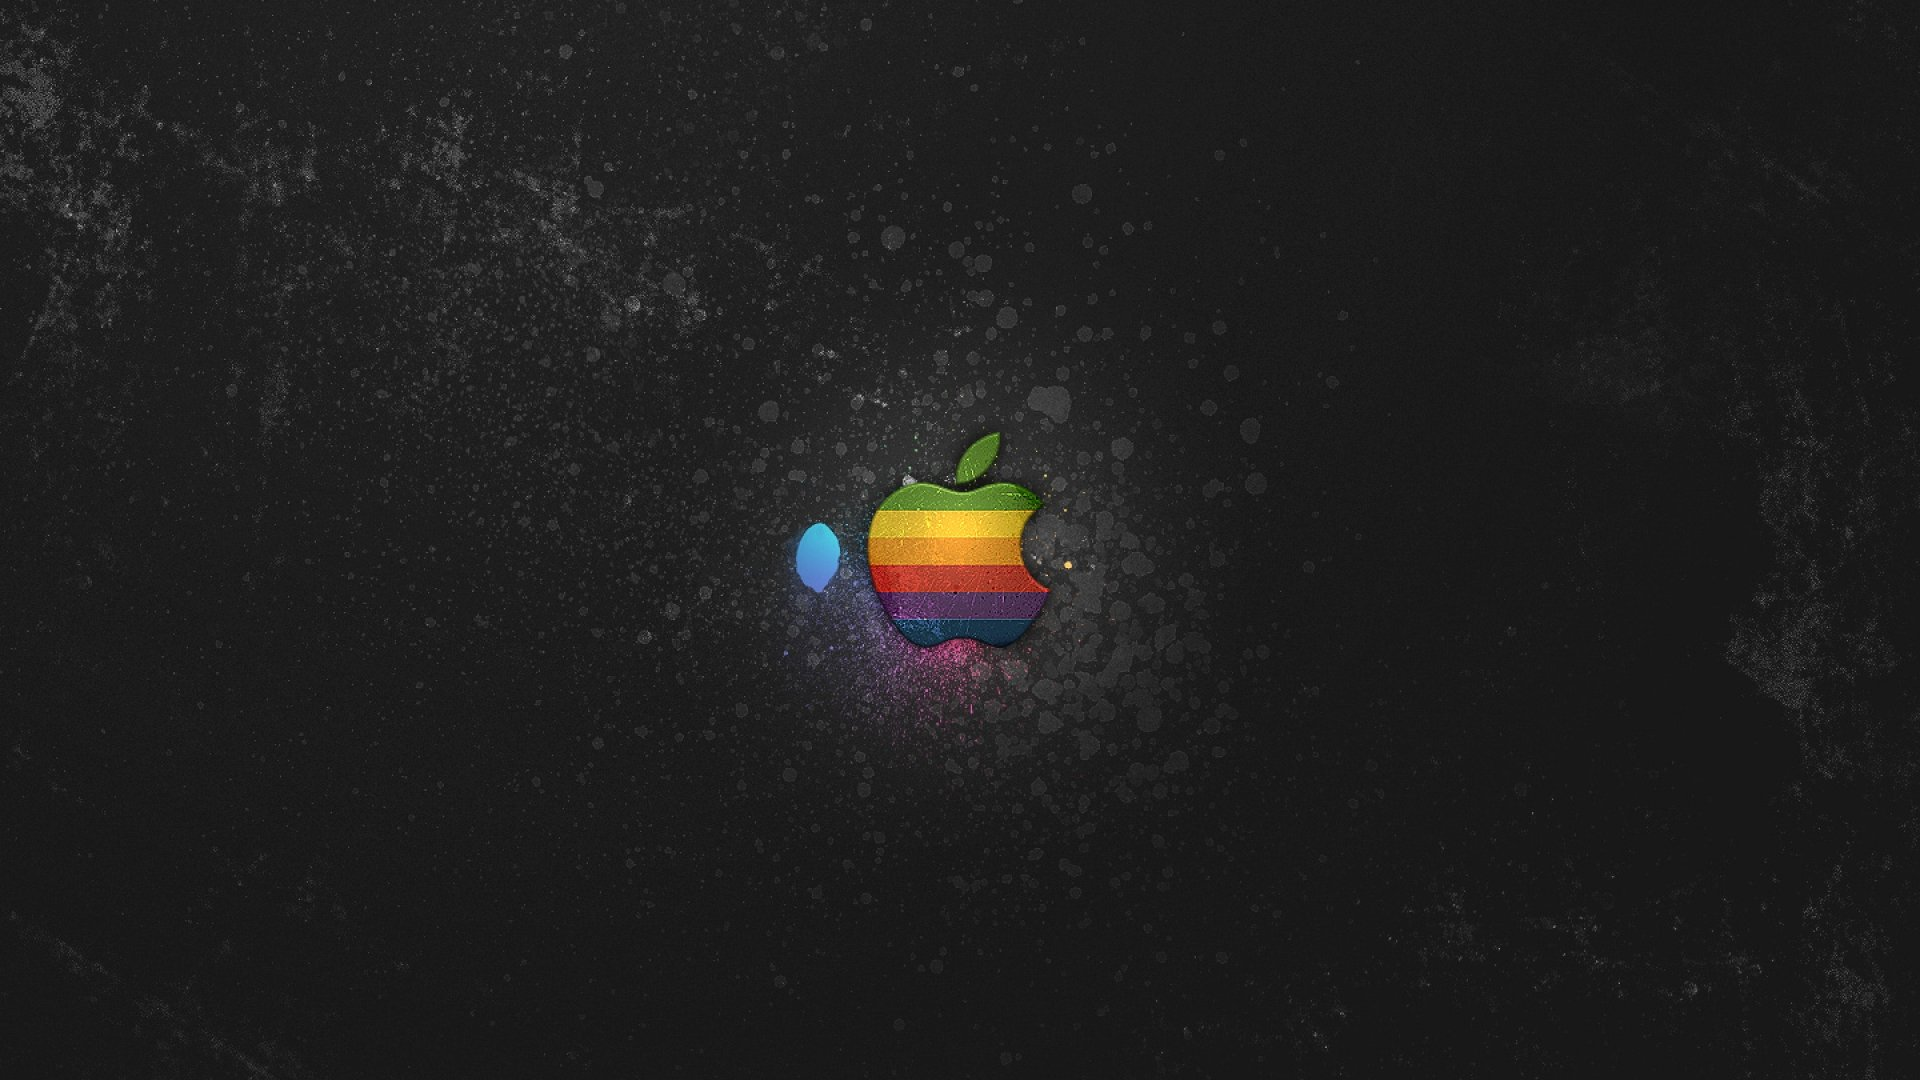 mac apple wallpapershigh quality hd high resolution mac apple 1920x1080